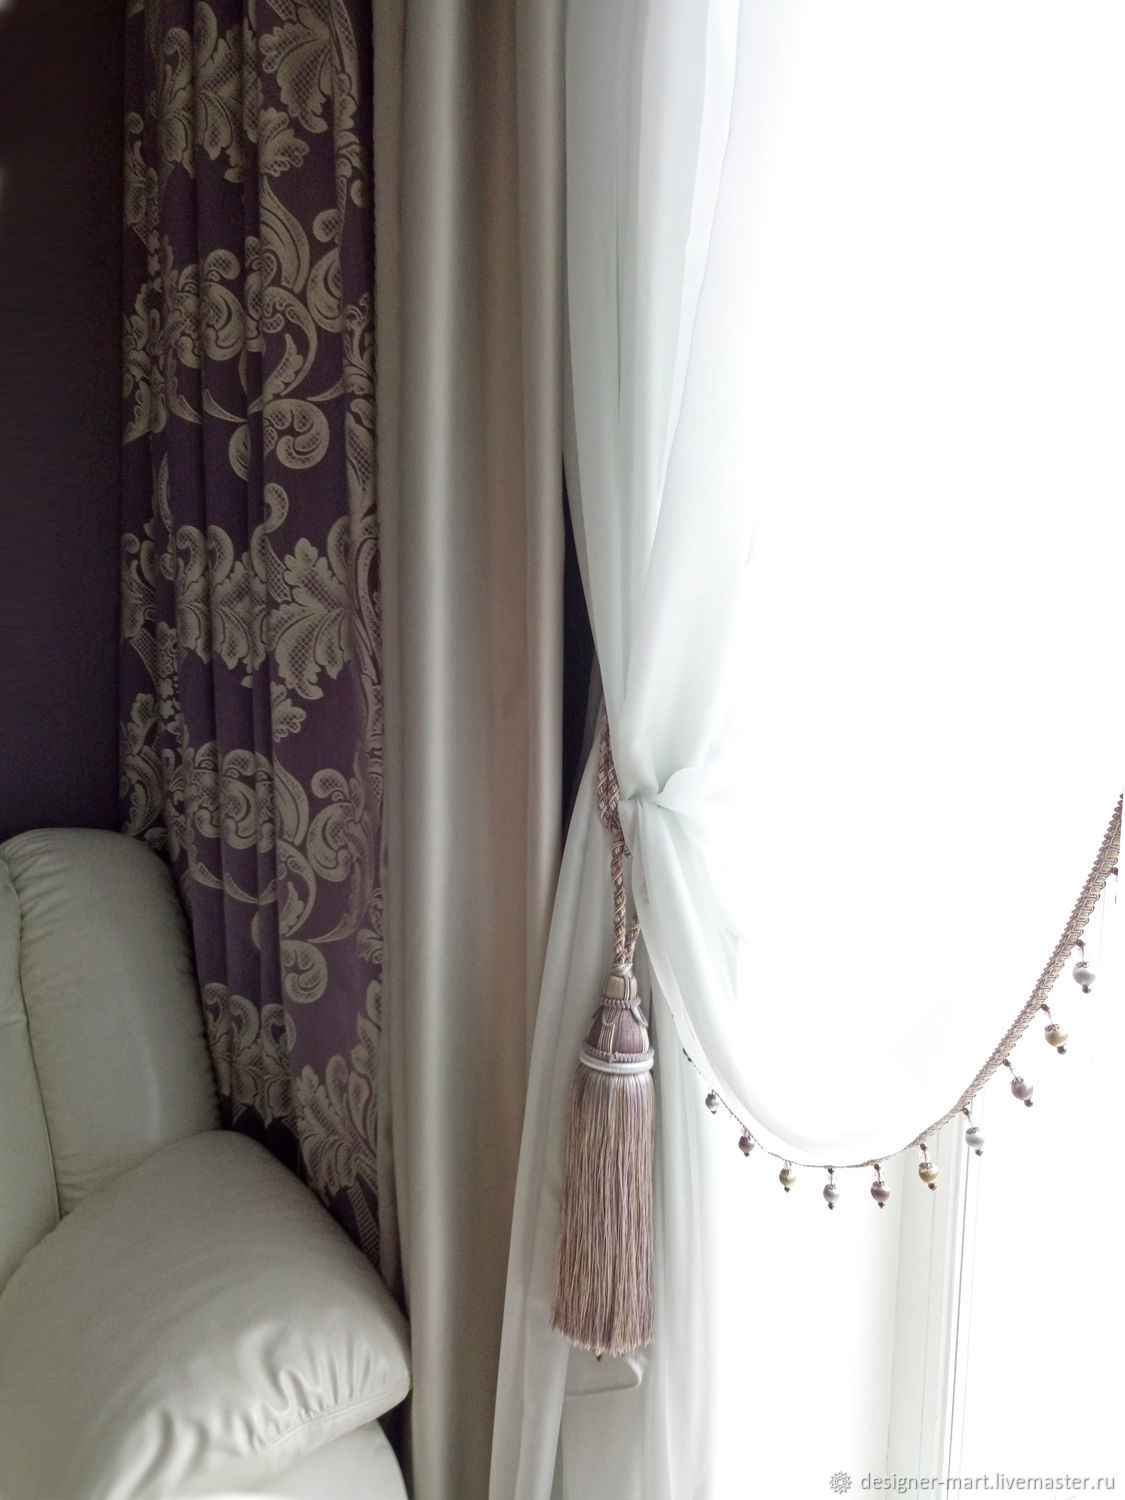 Lilac Curtains Designer Mart